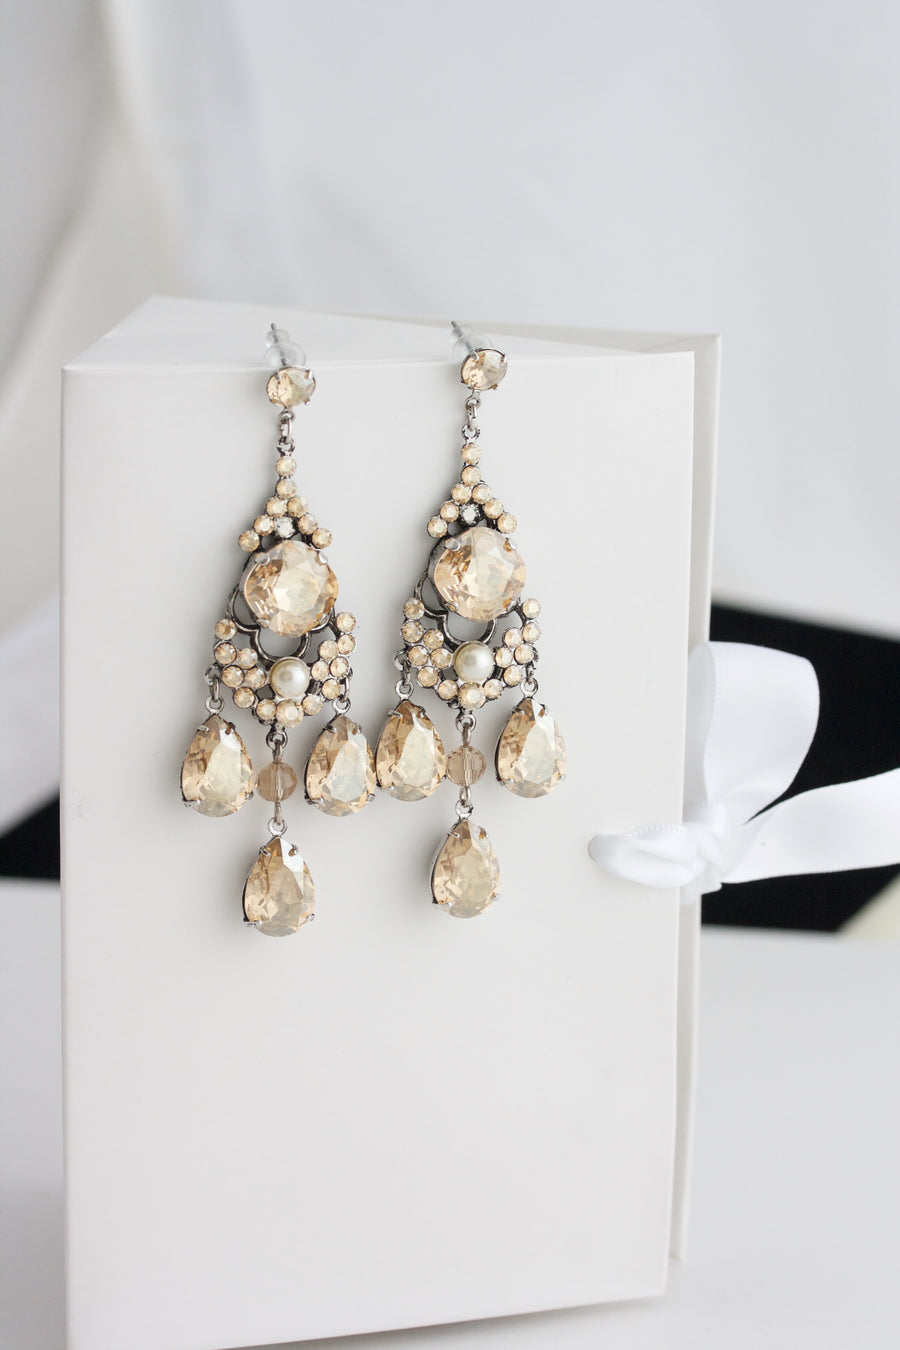 MAJESTIC LEONA BRIDAL EARRINGS - Lulu Splendor